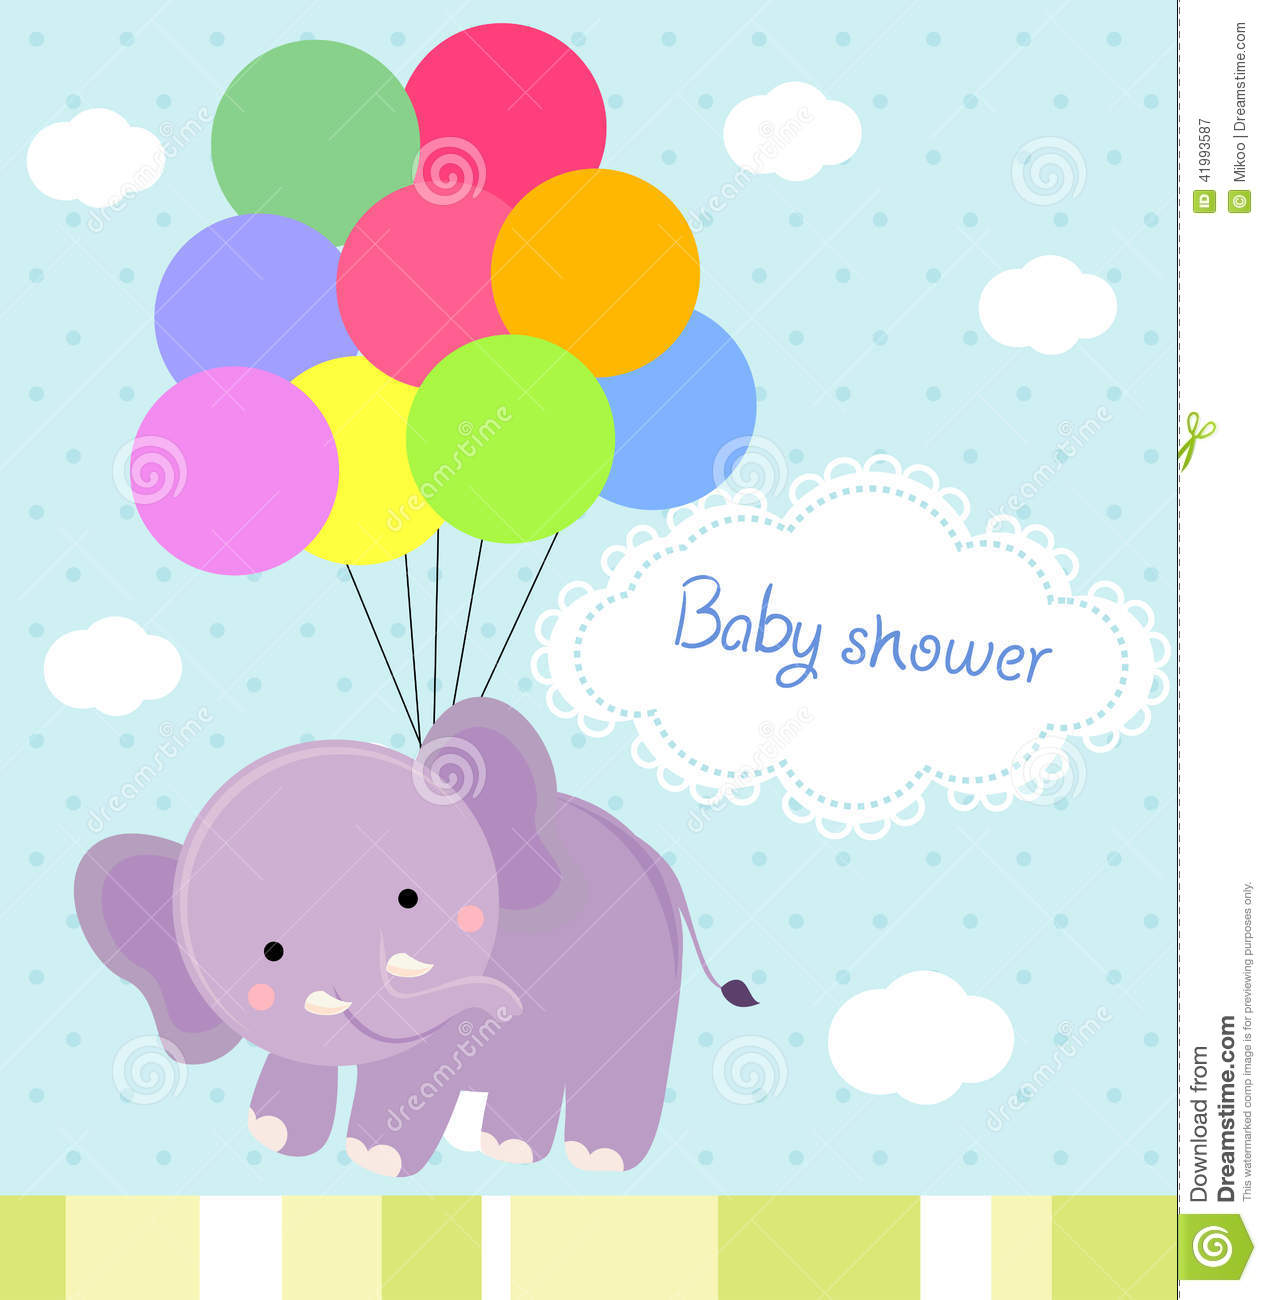 Baby Shower Cartoon Images ~ Baby shower stock vector image